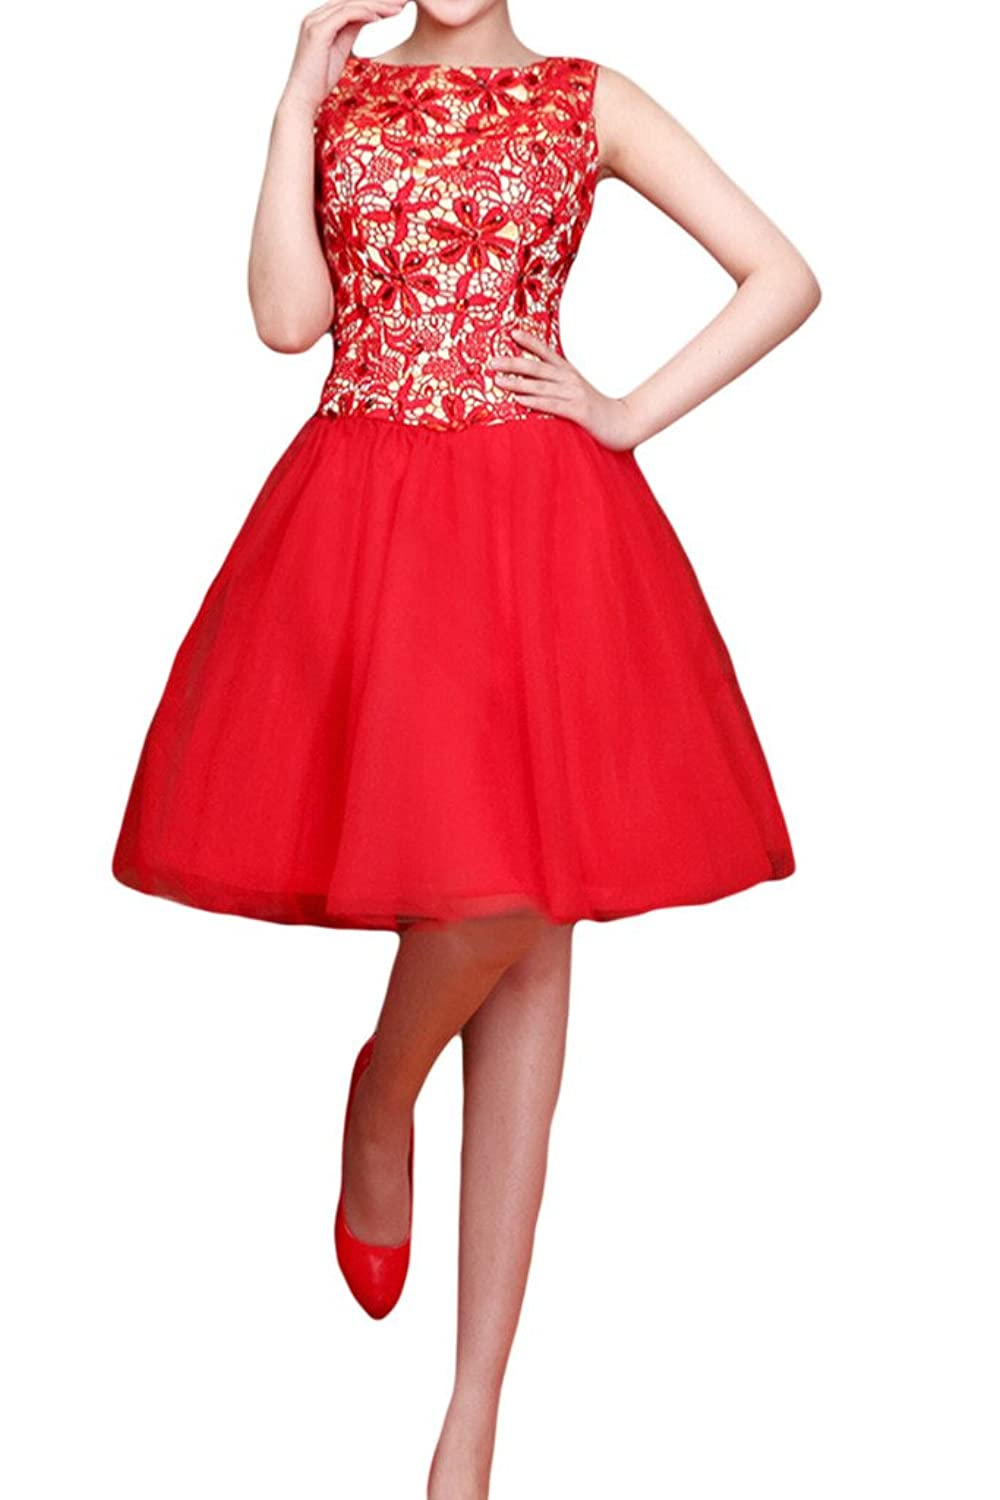 Gorgeous Bride Red Short Lace Tulle Homecoming Dress Prom Cocktail Gown For Girls